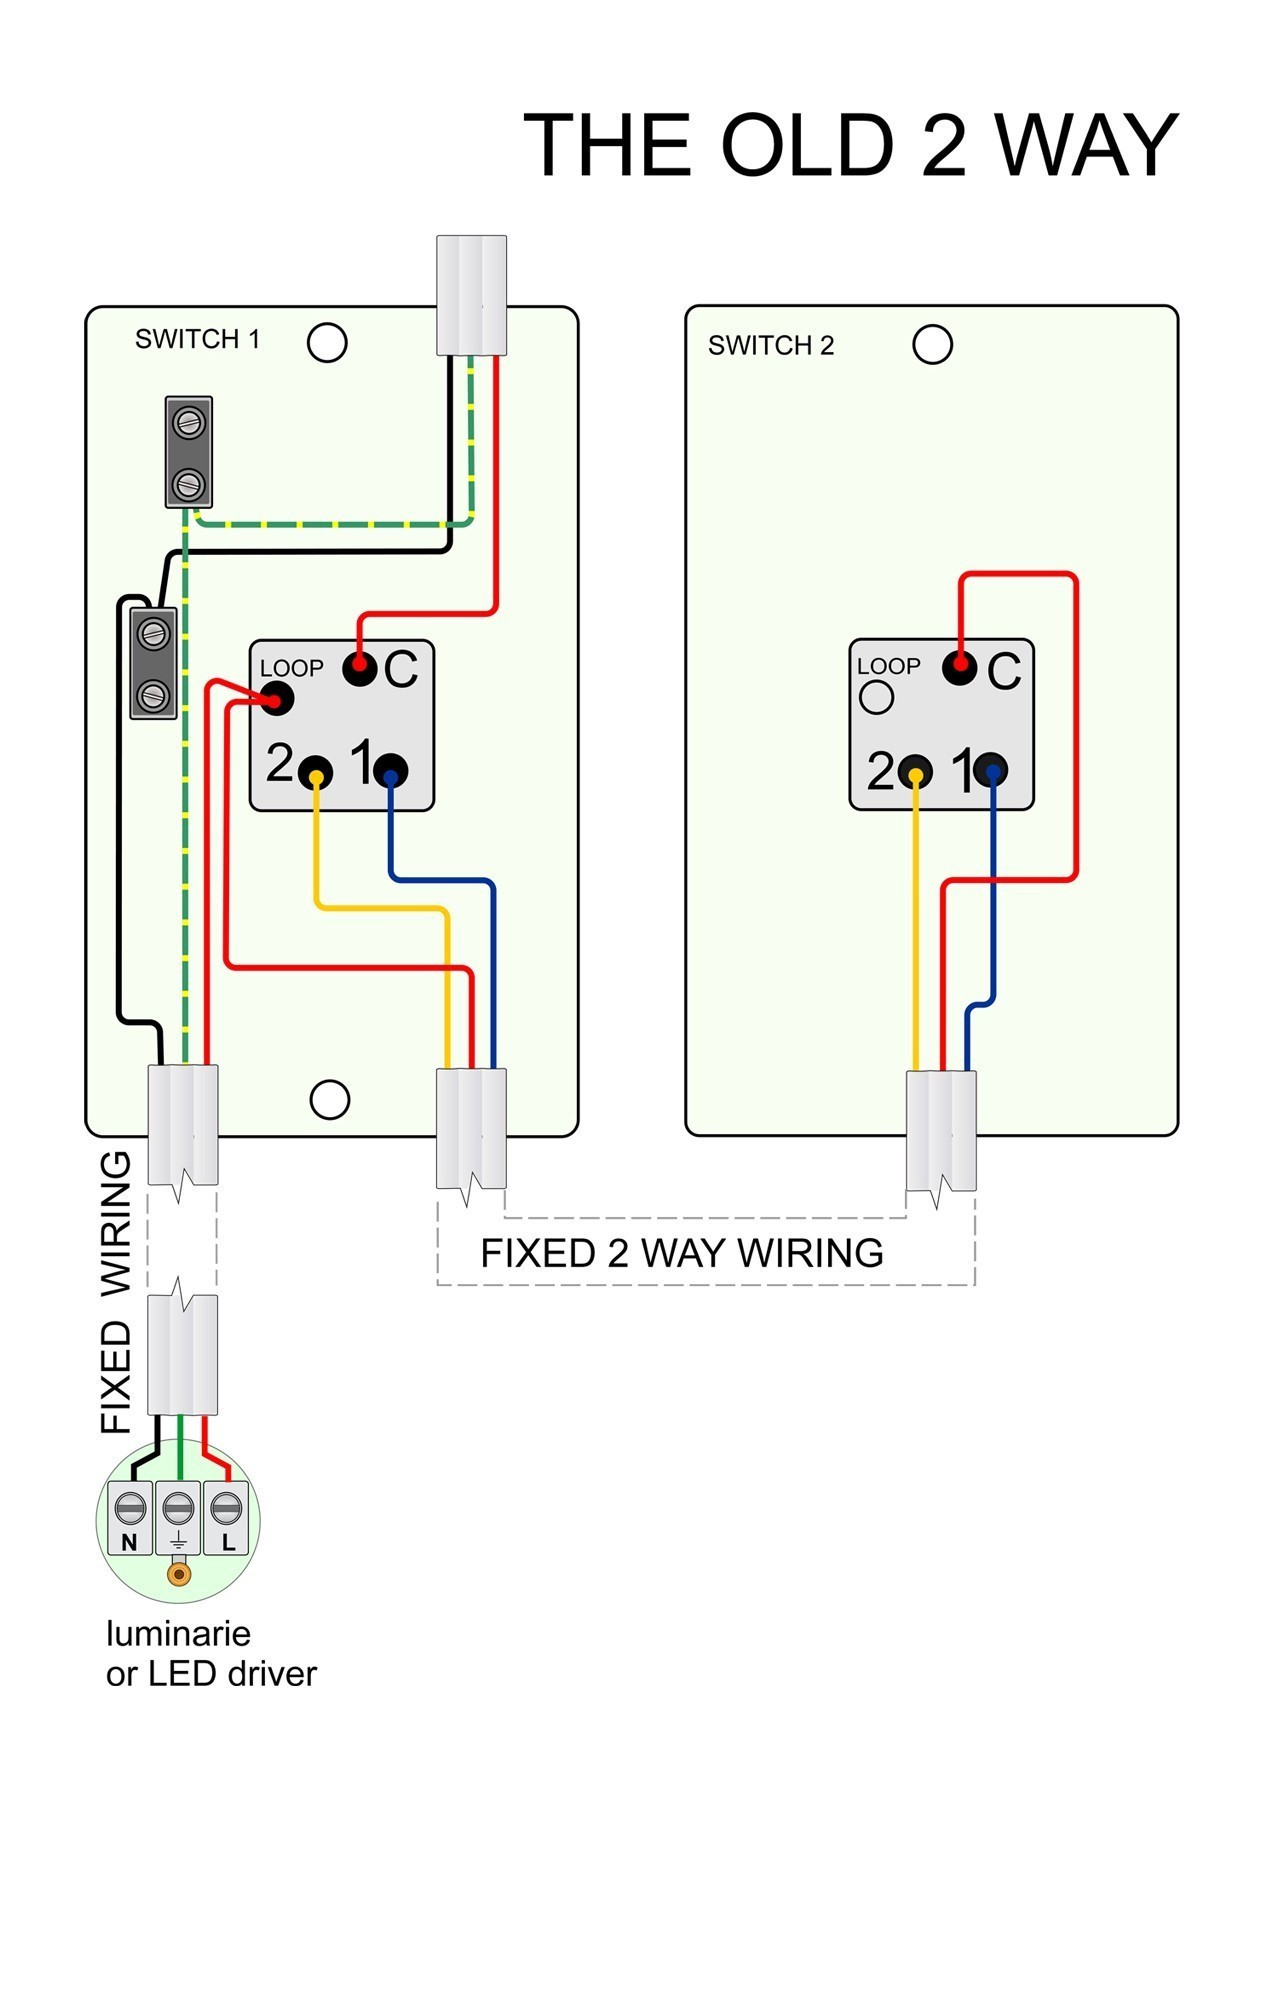 Yz 1476 Wiring A Light Switch 3 Gang Download Diagram